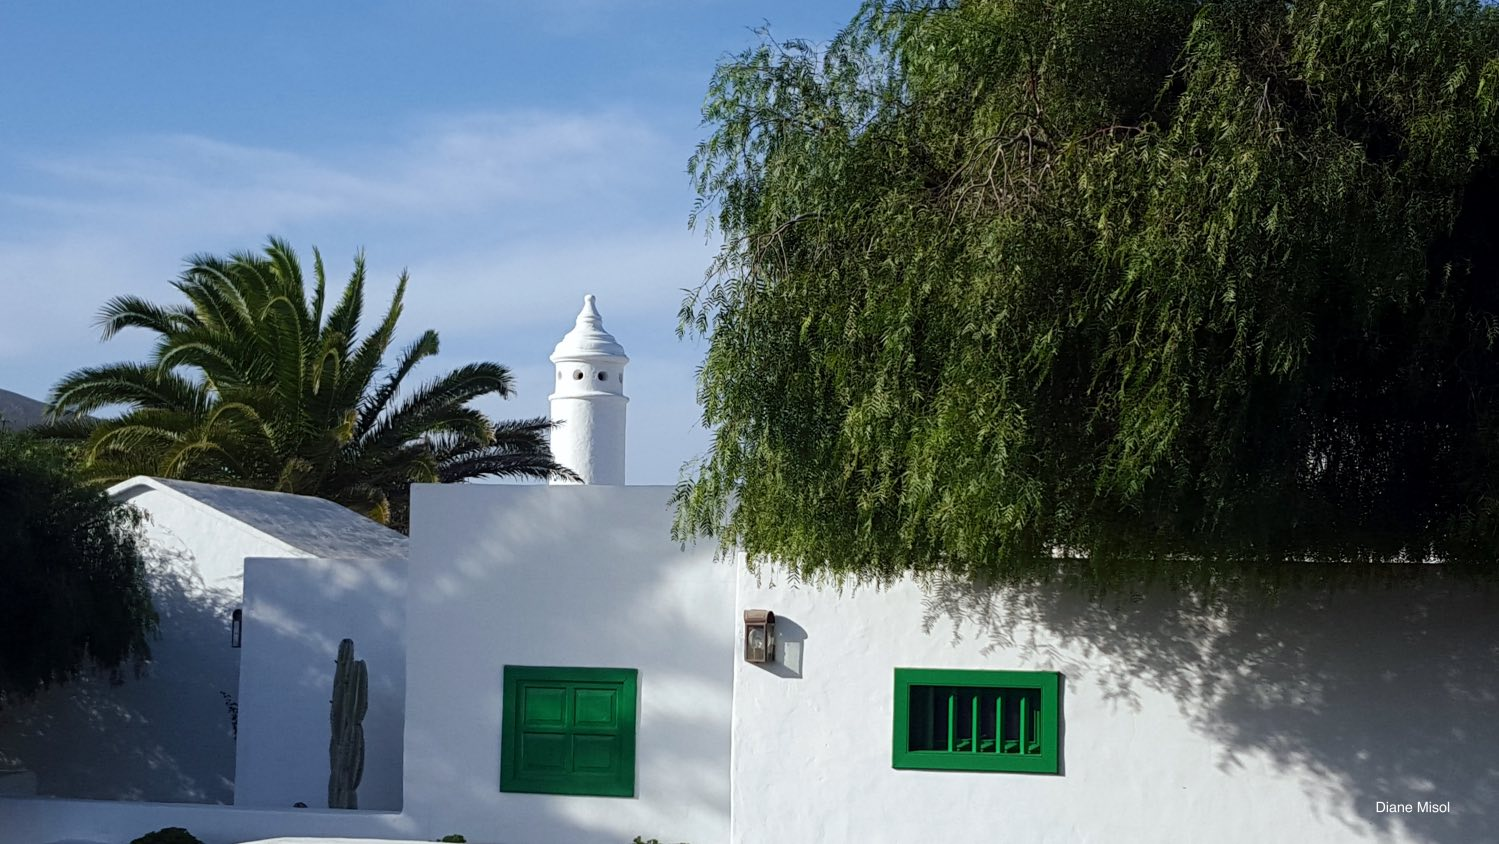 Building, White and Green, Lanzarote